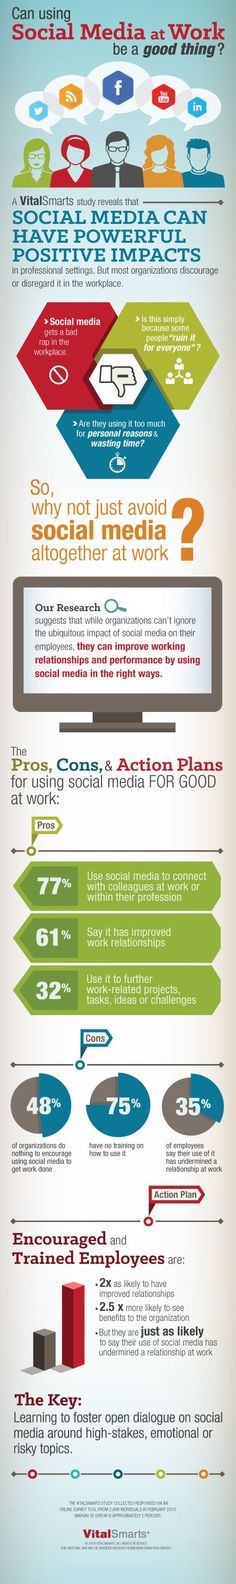 Infographic: 48% of companies don't encourage social media networking